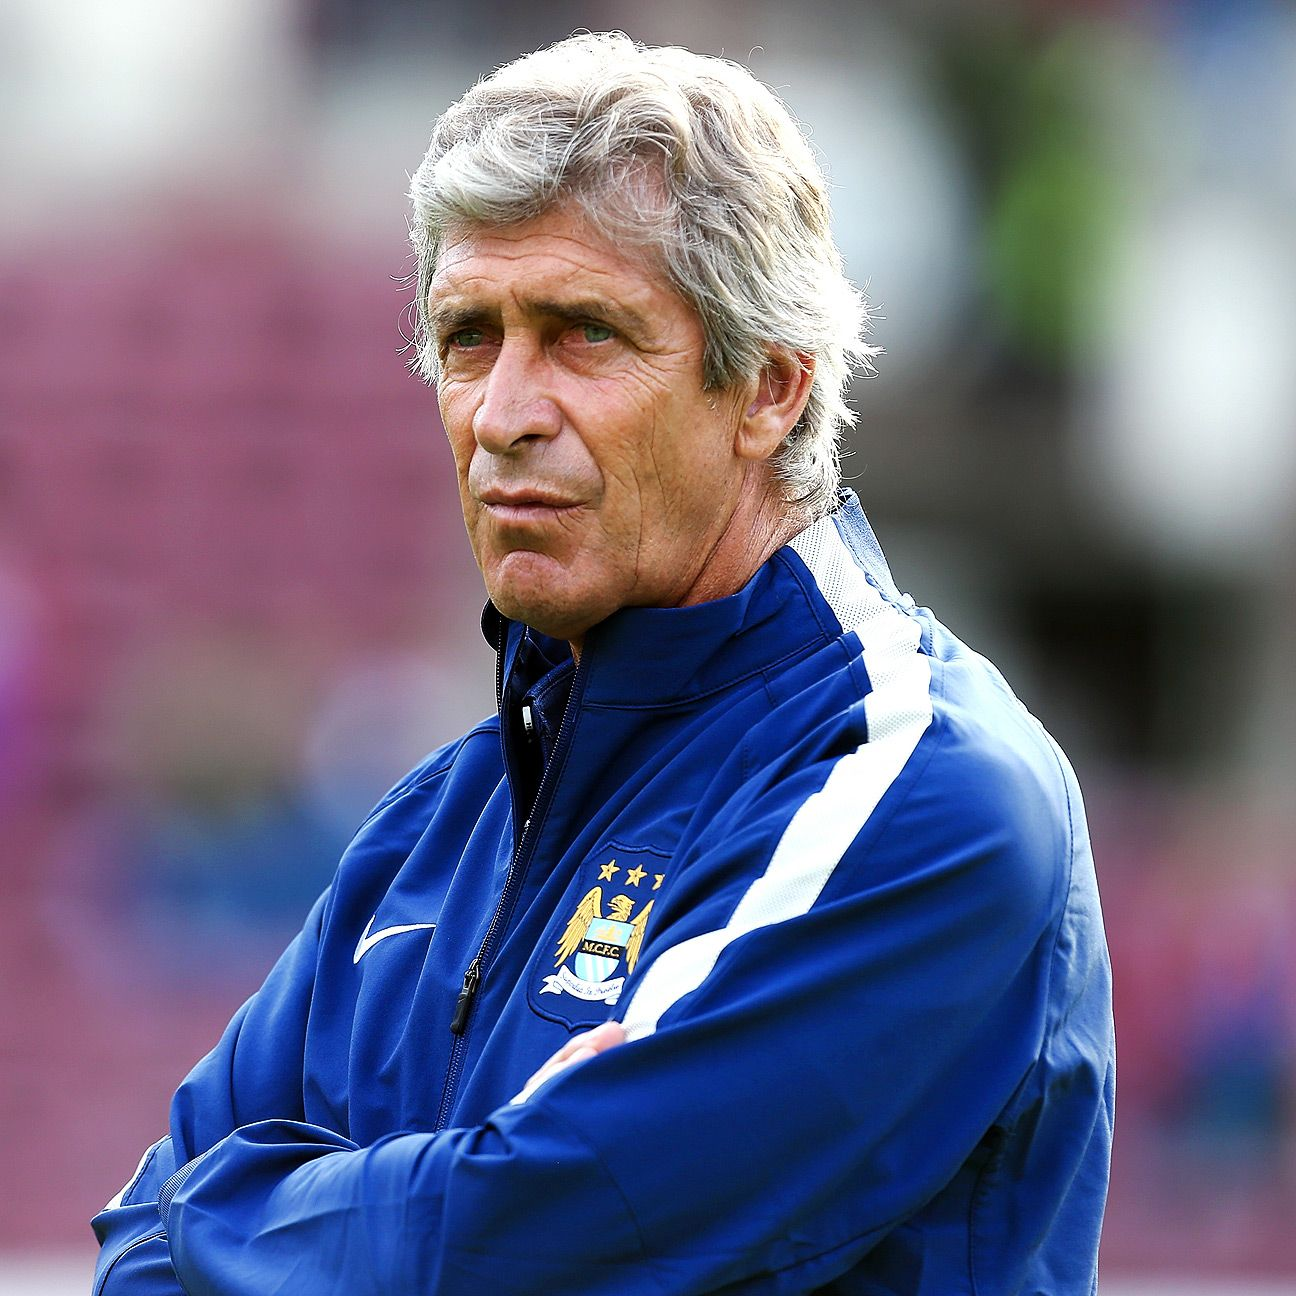 Man City boss Manuel Pellegrini will be keeping a close eye on the club's youth products during preseason.